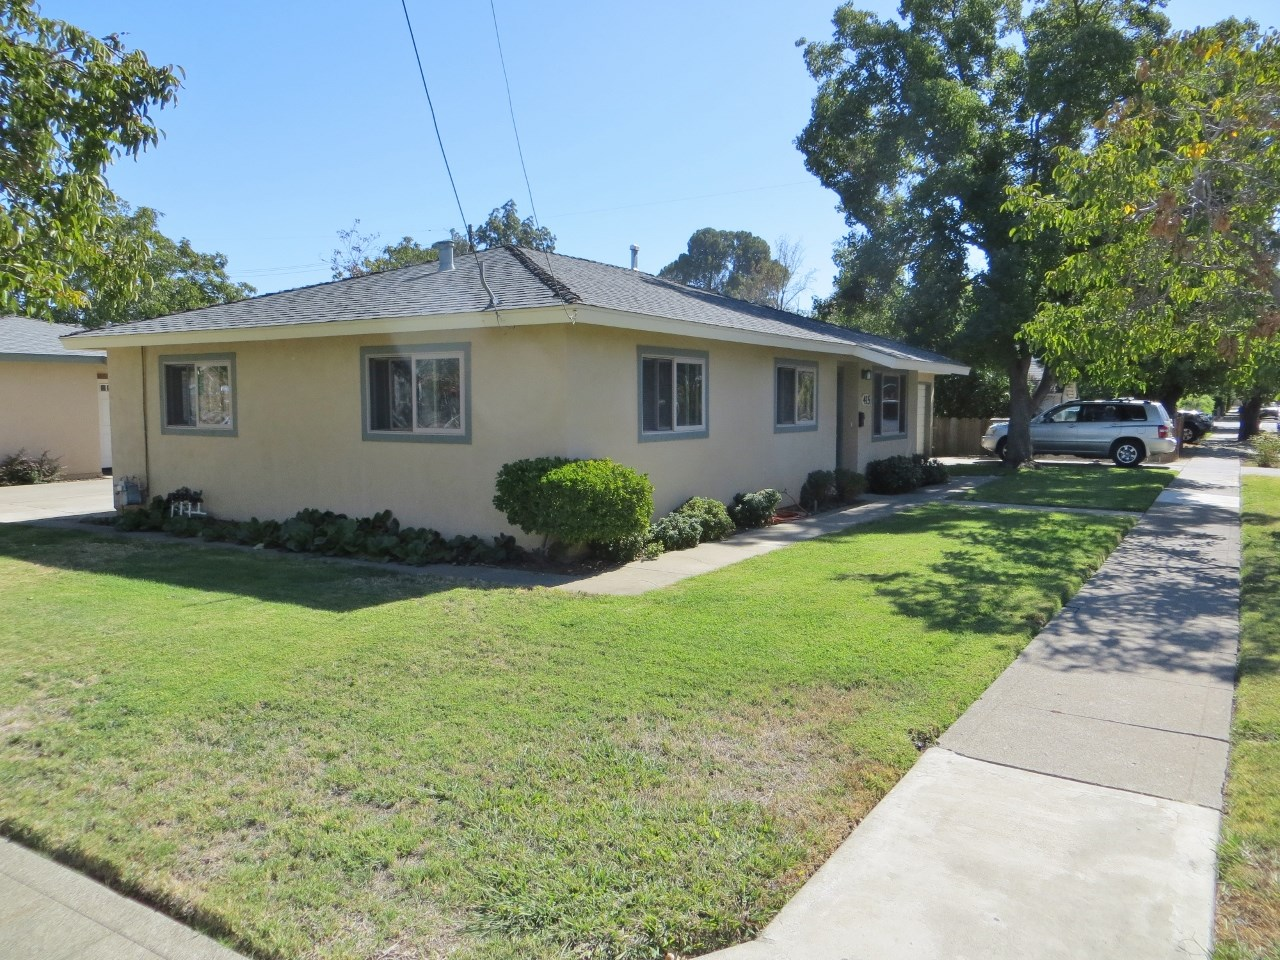 Winters, CA Income Opportunity with Multiple Units for Sale